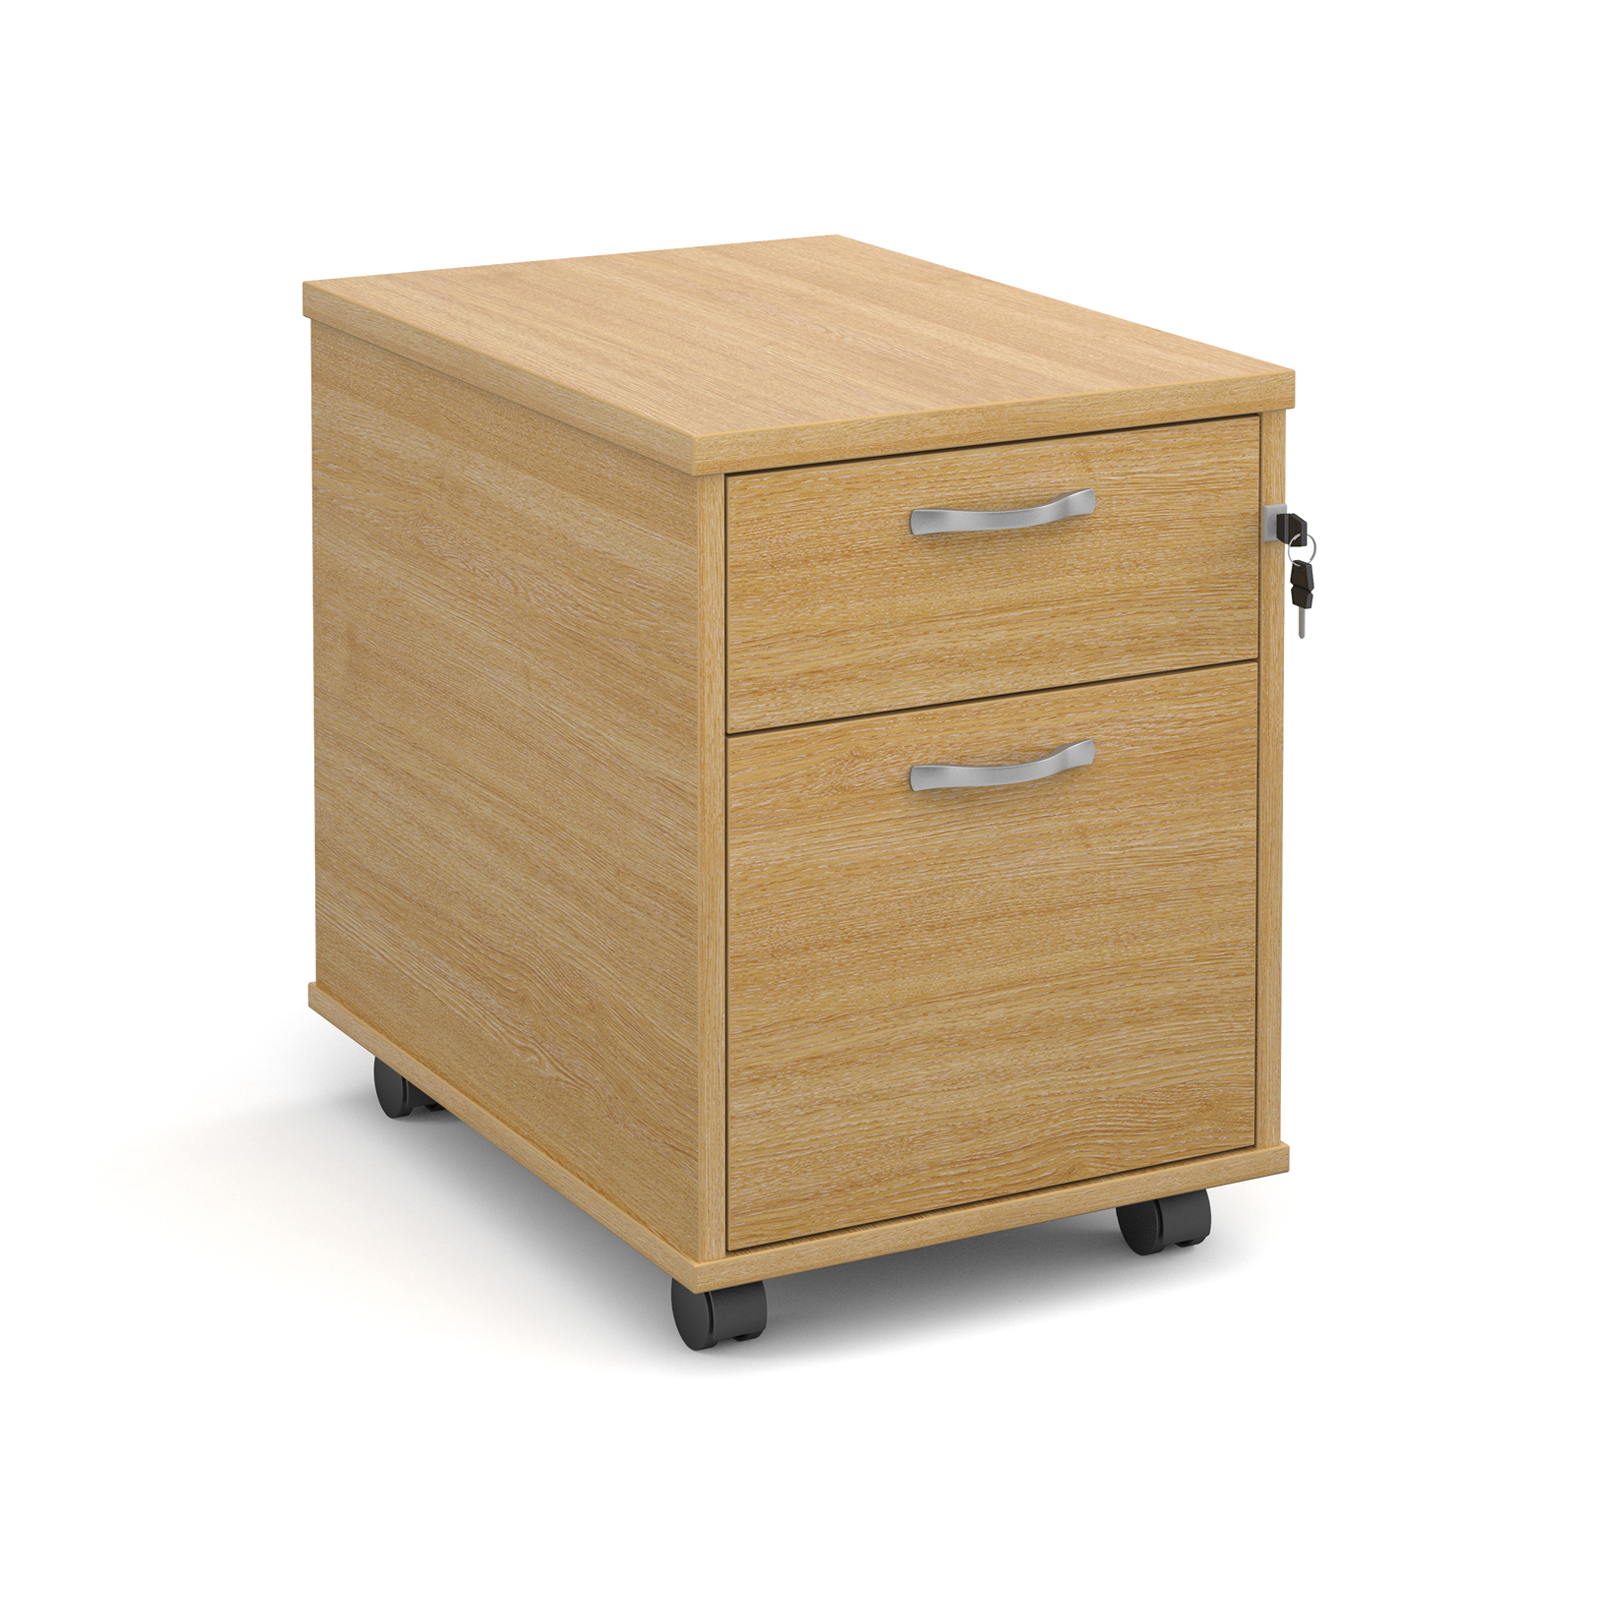 Mobile 2 drawer pedestal with silver handles 600mm deep - oak